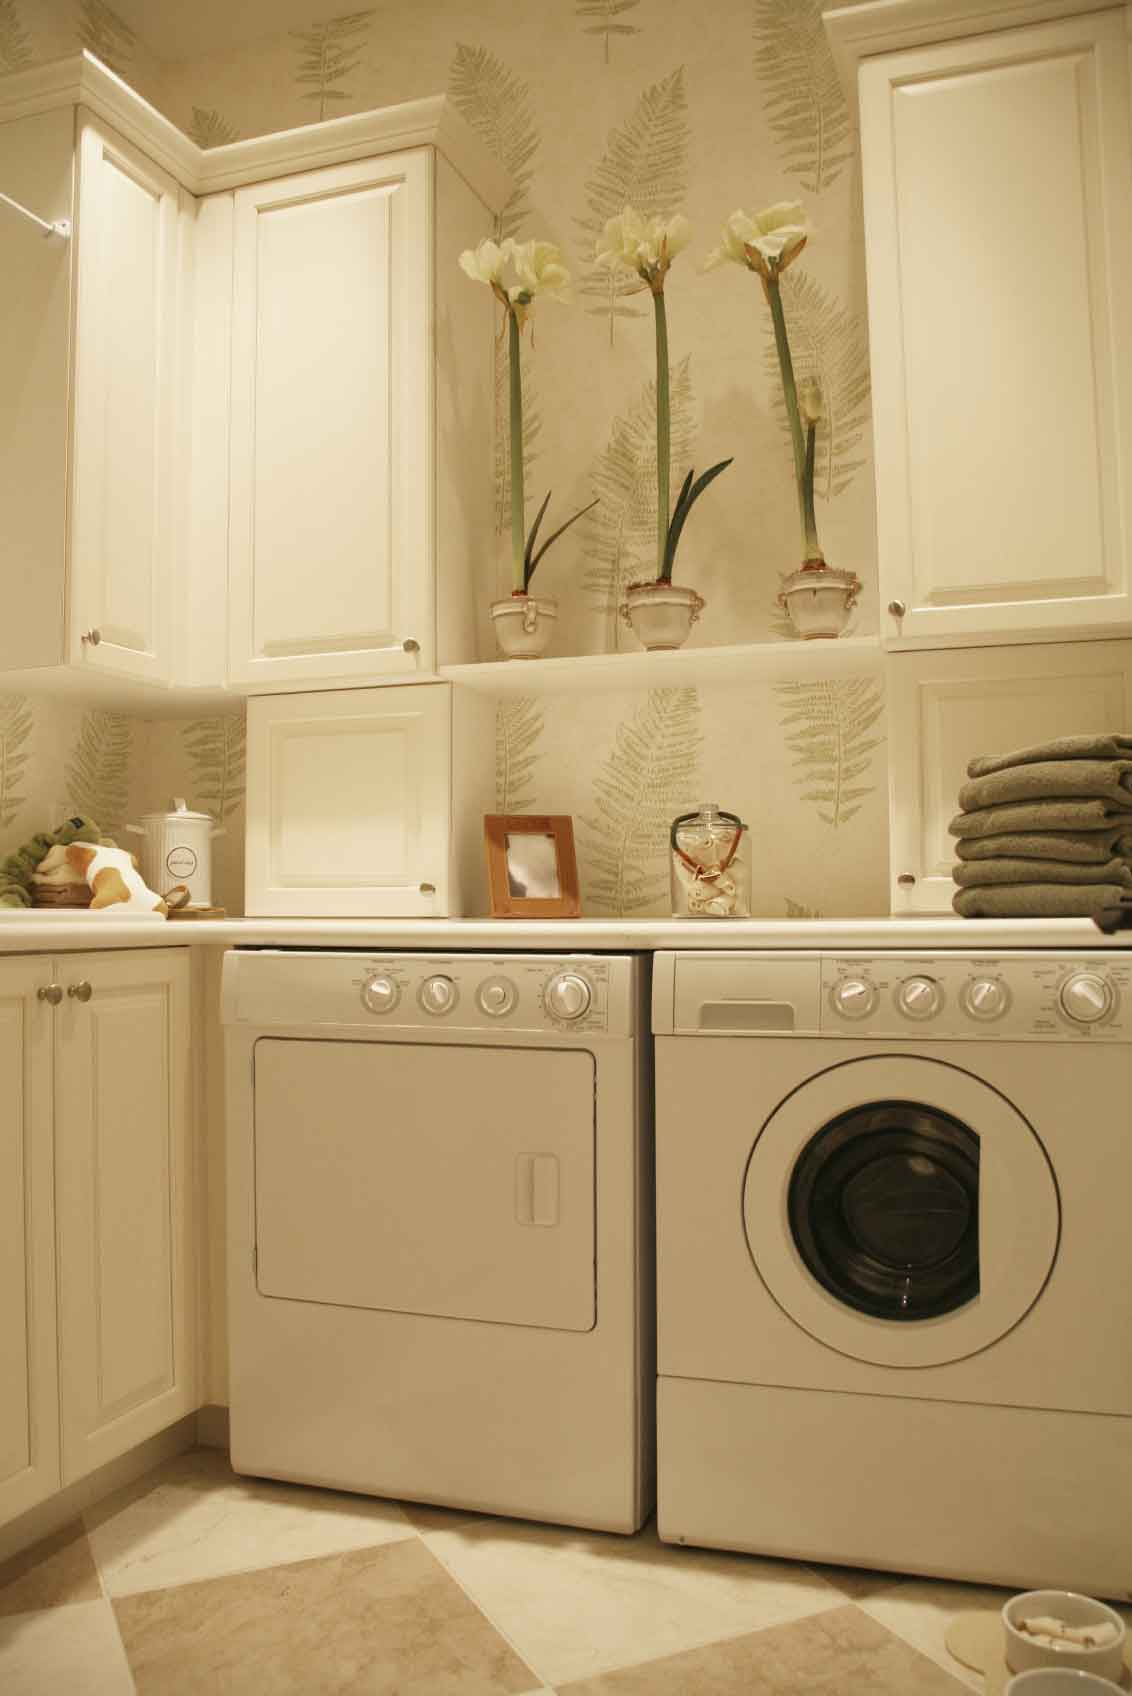 Some Best Basement Laundry Room That You Should Know. Orange Living Room Pinterest. The Best Living Room Pc Games To Play On The Couch. Formal Living Room Wiki. Living Room Curtains Amazon. Living Room Furniture Pakistan. Living Room Corner Hutch. Types Of Fabric For Living Room Furniture. Living Room Sets In Philadelphia